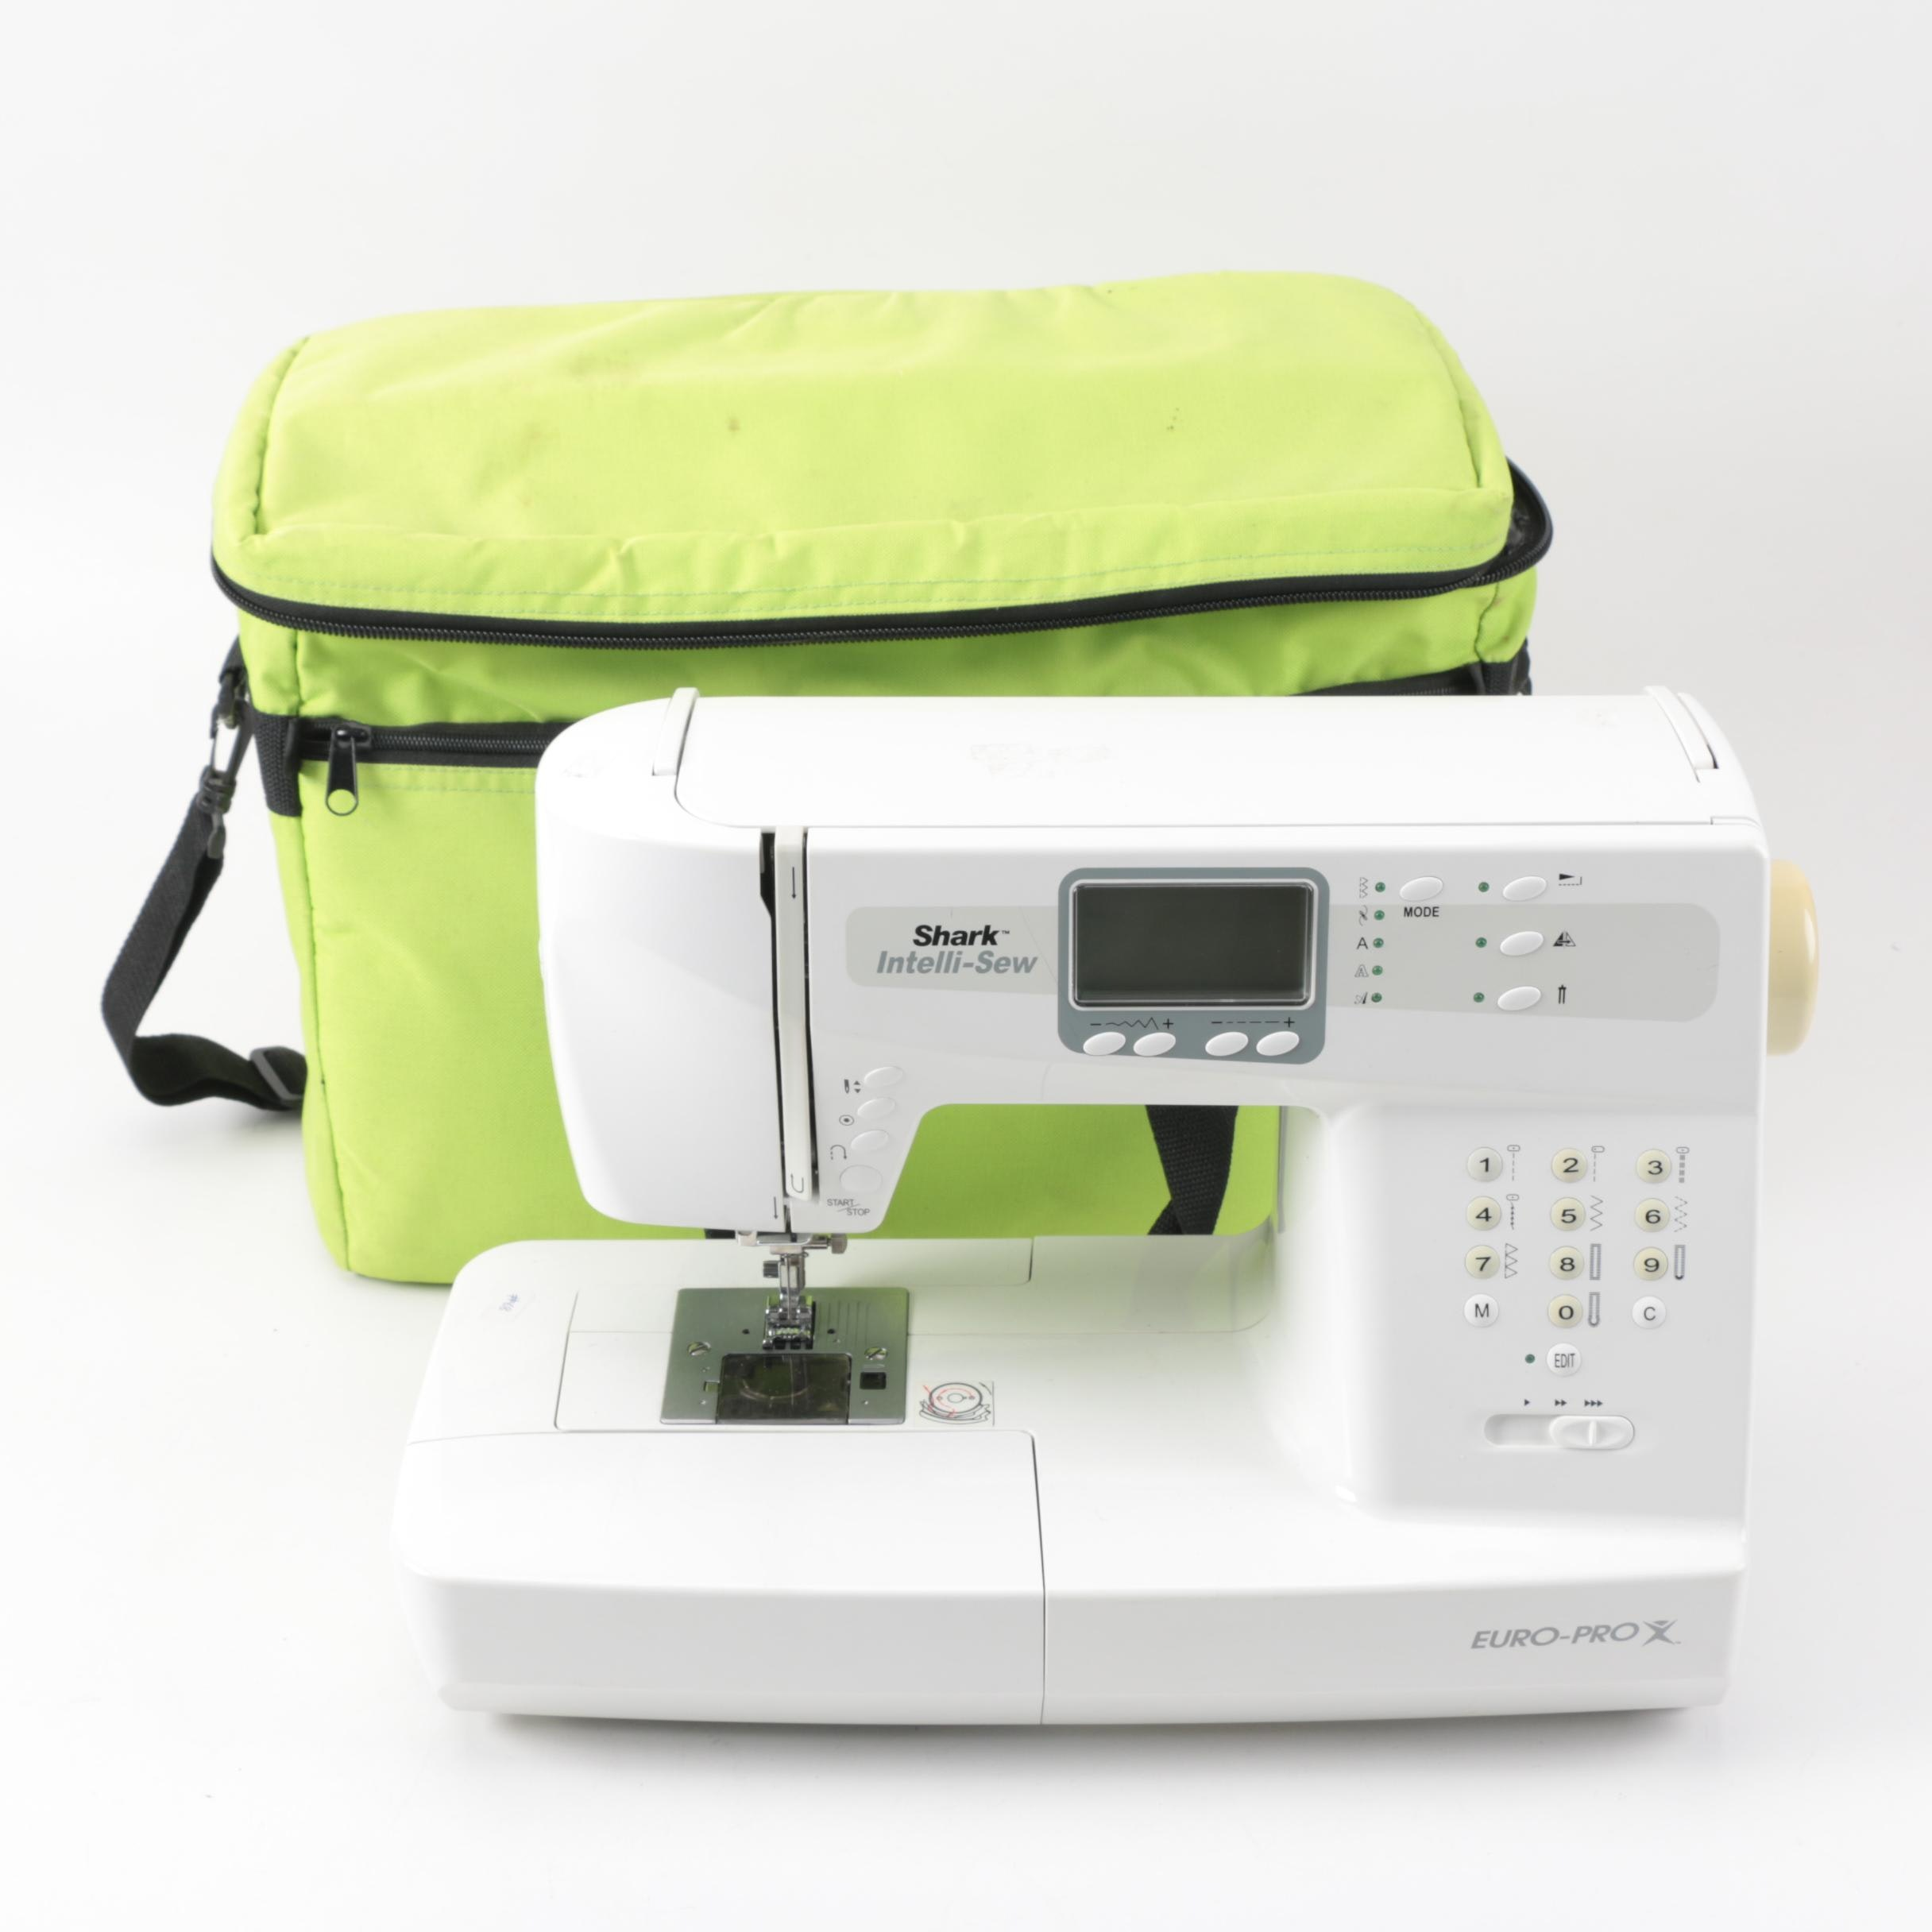 "Shark ""Euro Pro X"" Sewing Machine"